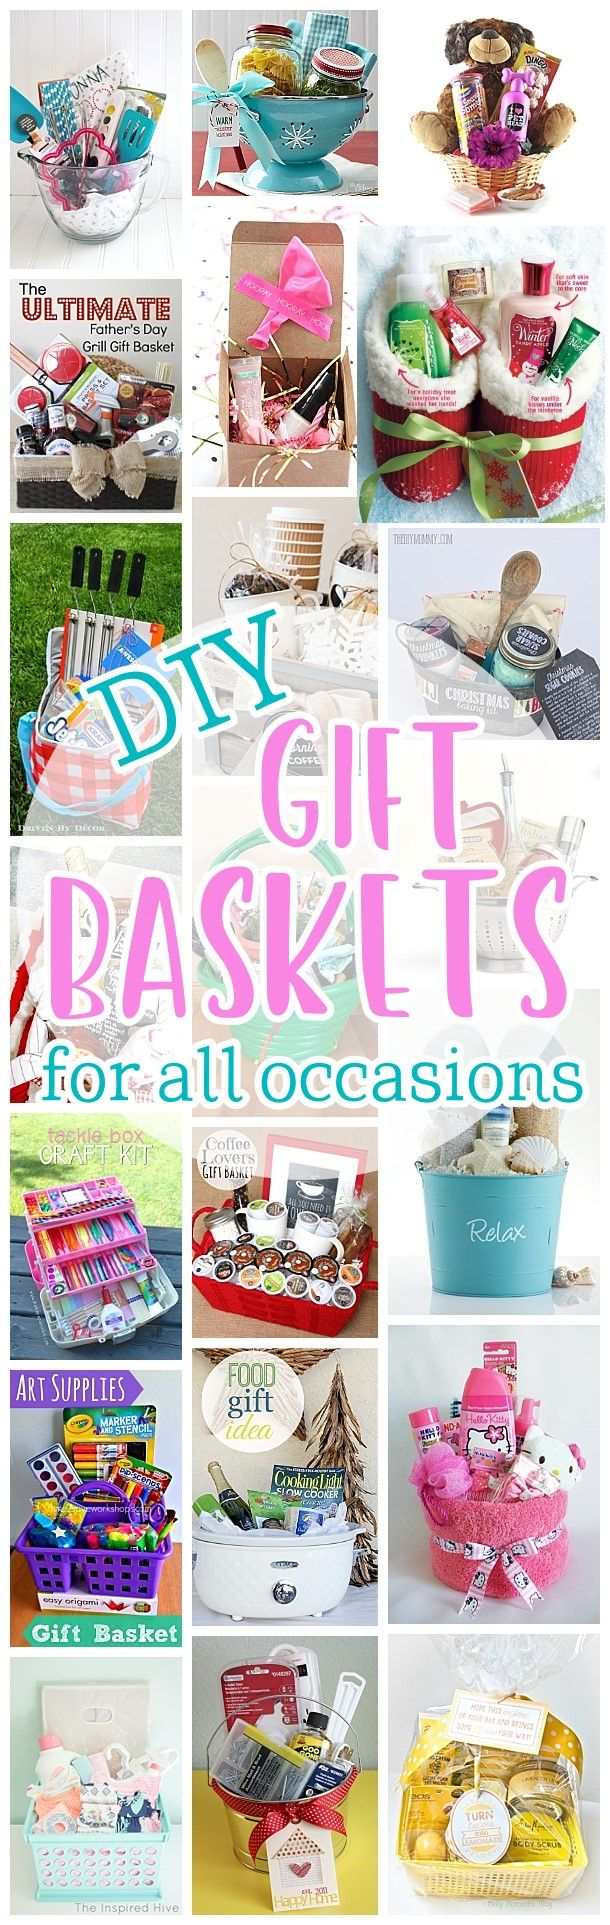 Do it yourself gift basket ideas for any and all occasions do it yourself gift baskets ideas for any and all occasions perfect diy gift baskets for christmas birthdays thank you gifts housewarmings baby solutioingenieria Choice Image